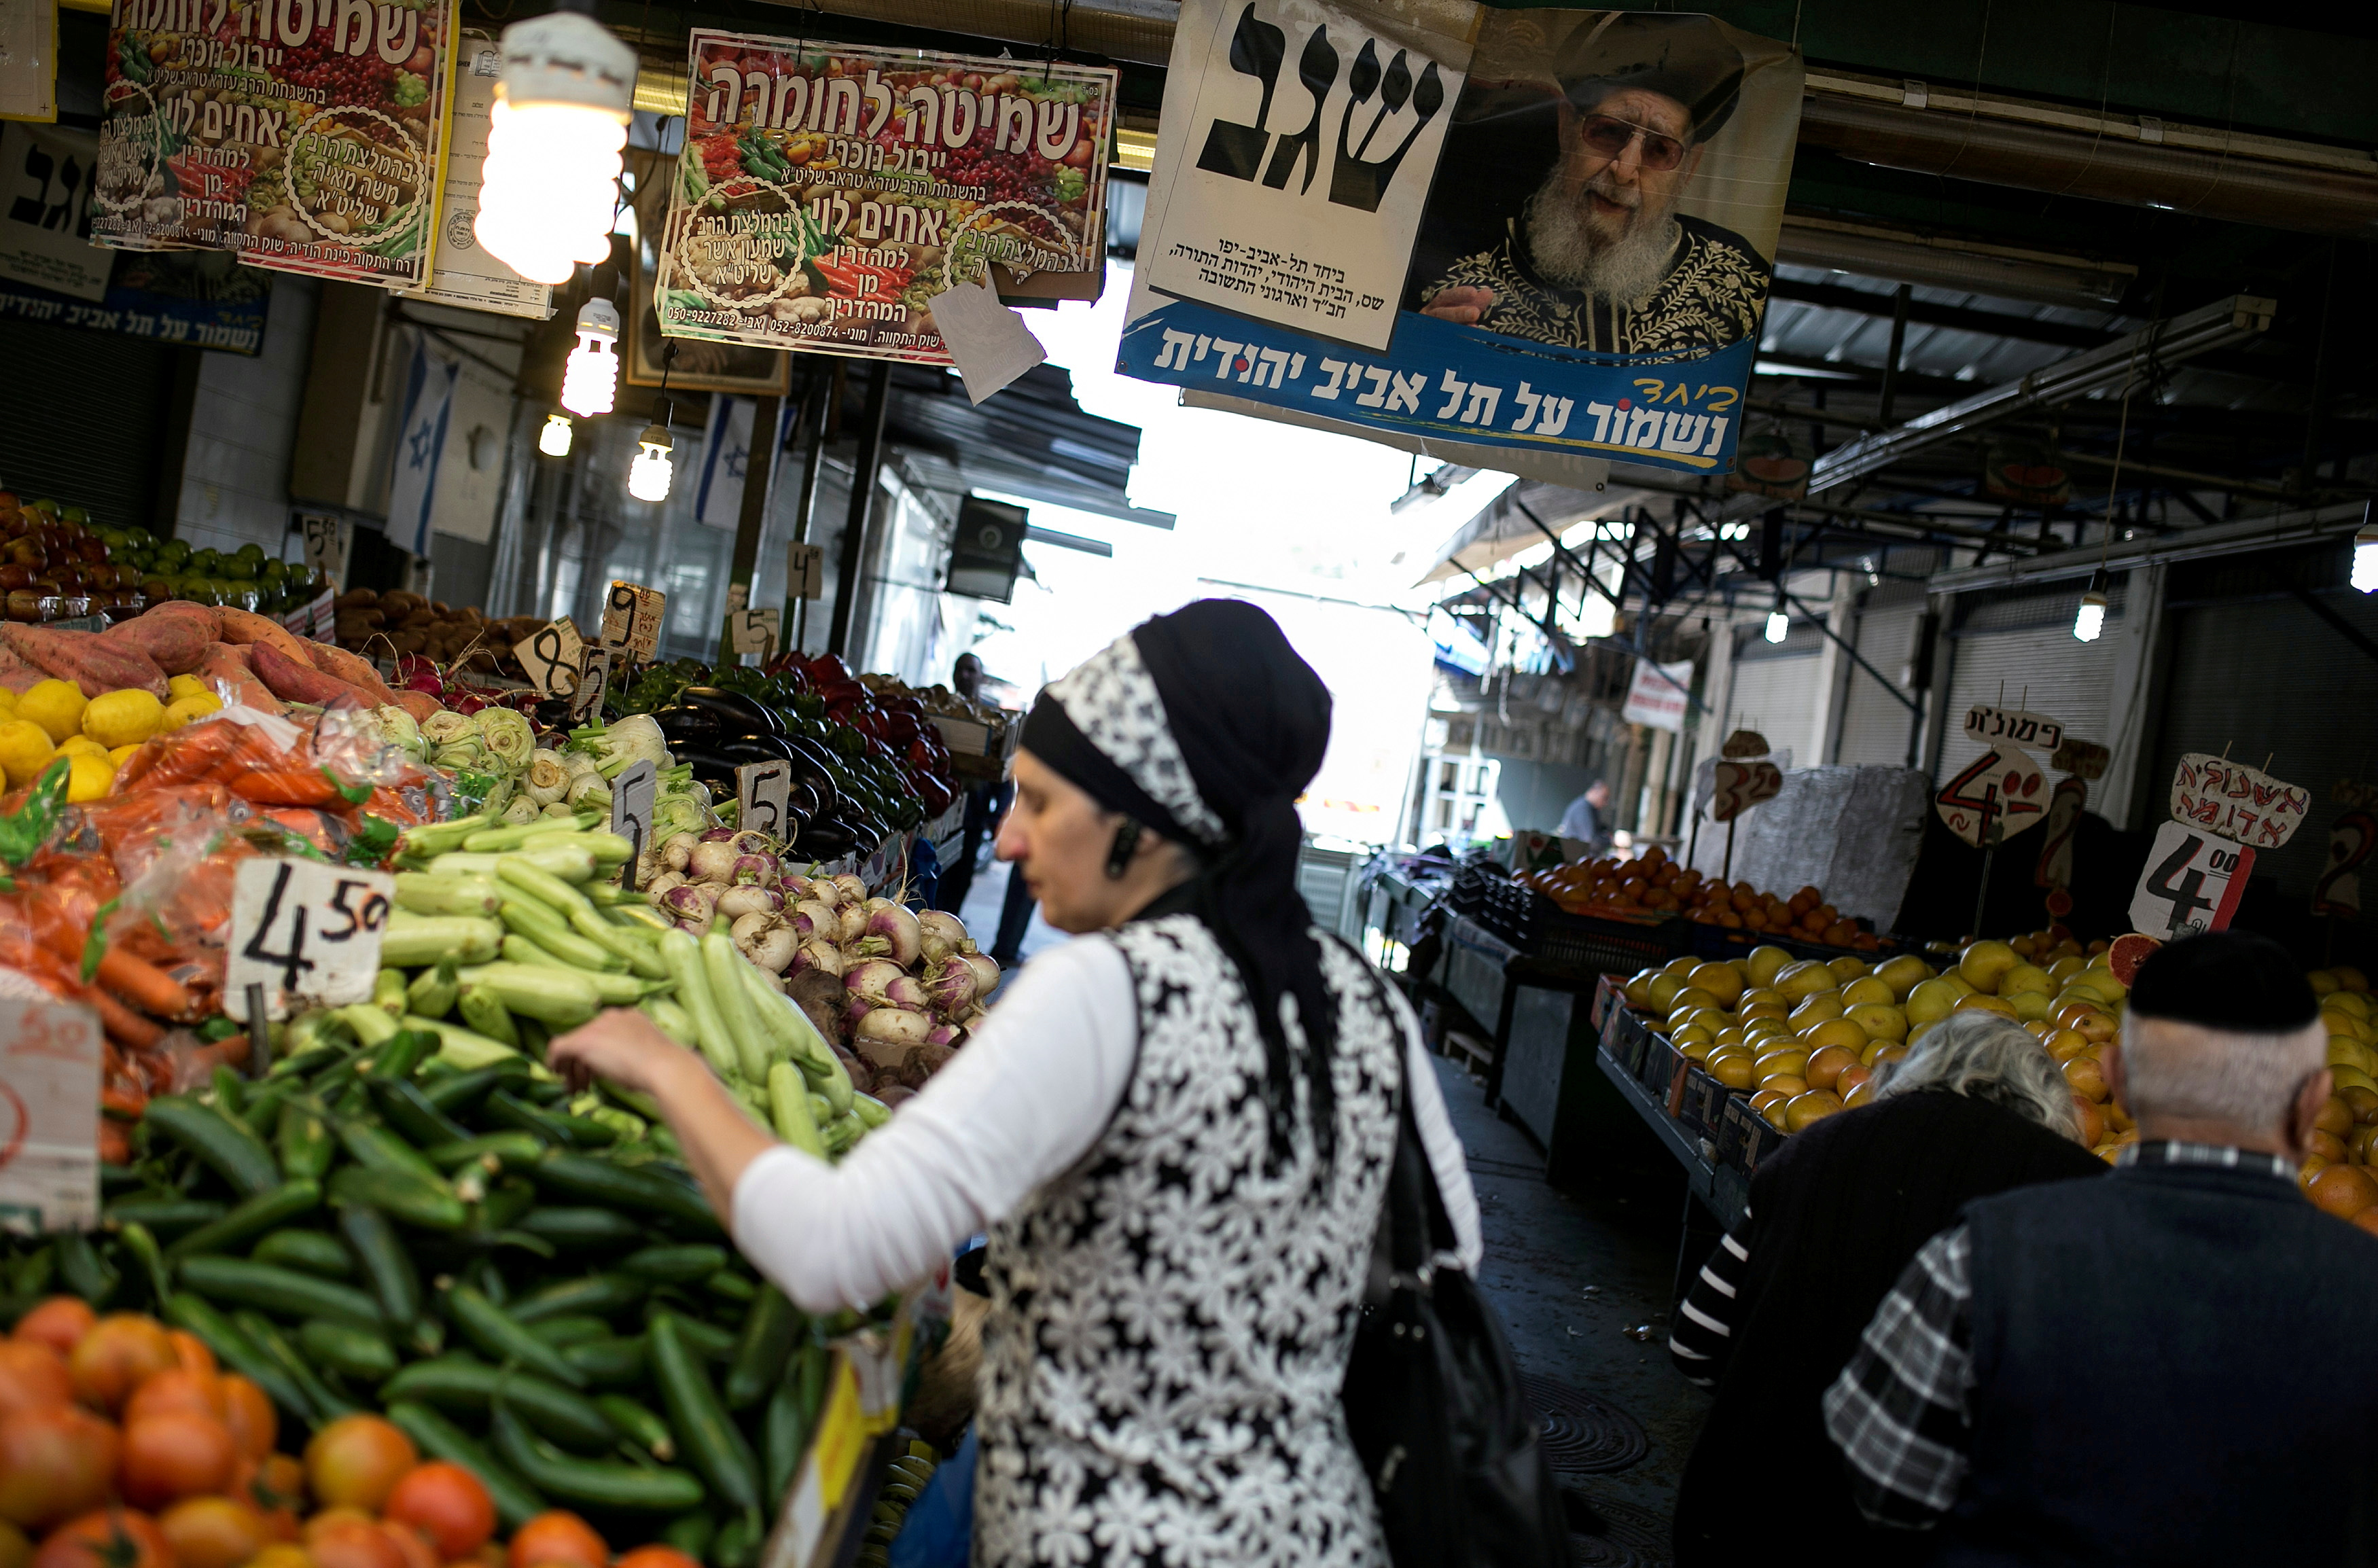 A religious Jewish woman shops for vegetables at a market in Tel Aviv, Israel March 10, 2015. REUTERS/Baz Ratner